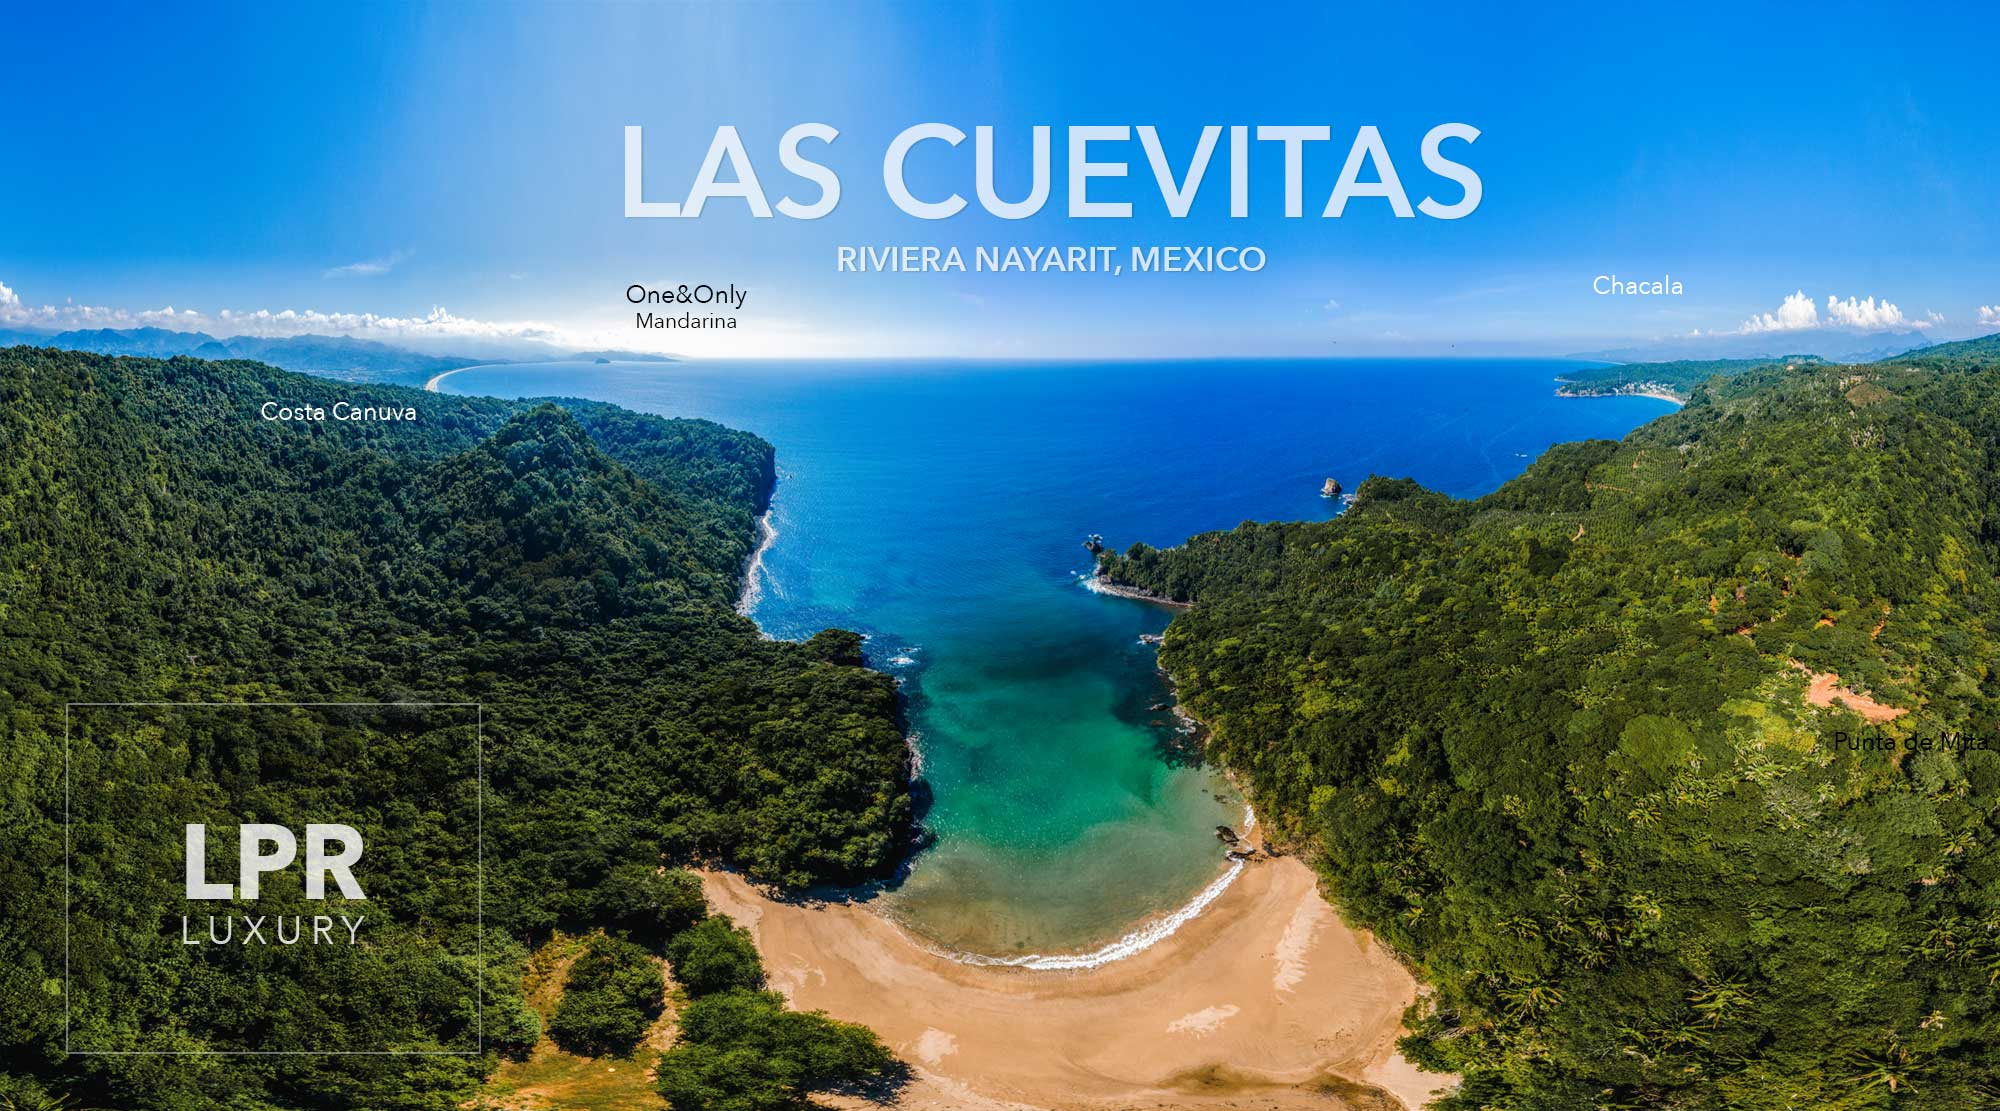 Las Cuevitas - Riviera Nayarit, Mexico beachfront Development land for sale in Puerto Vallarta, Punta de Mita - tierras, parceles, hotel sites for sale